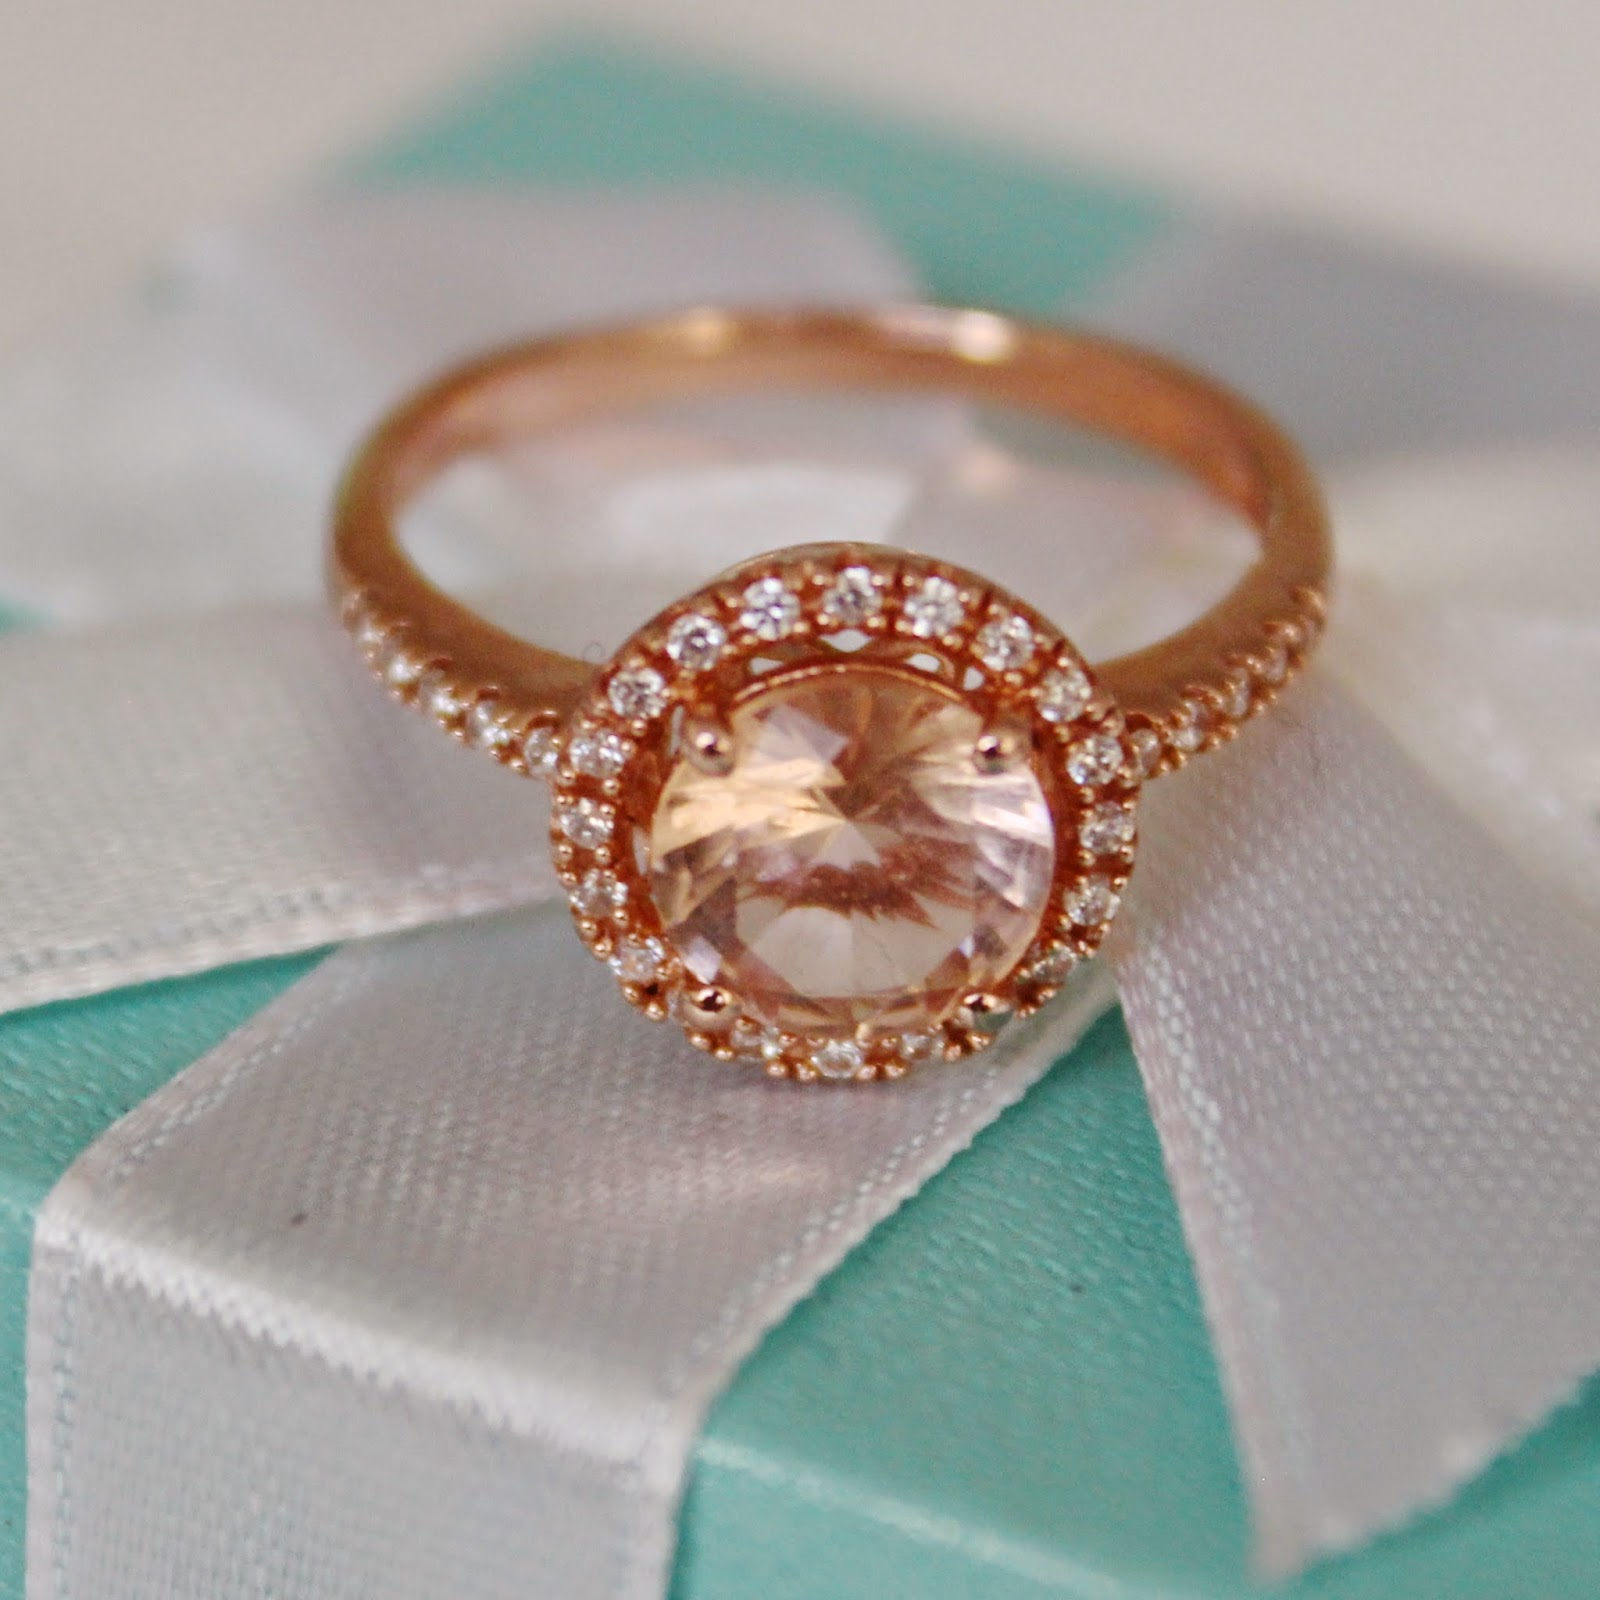 293ded63c4acd My cute new rose gold rings from QVC | flutter and sparkle